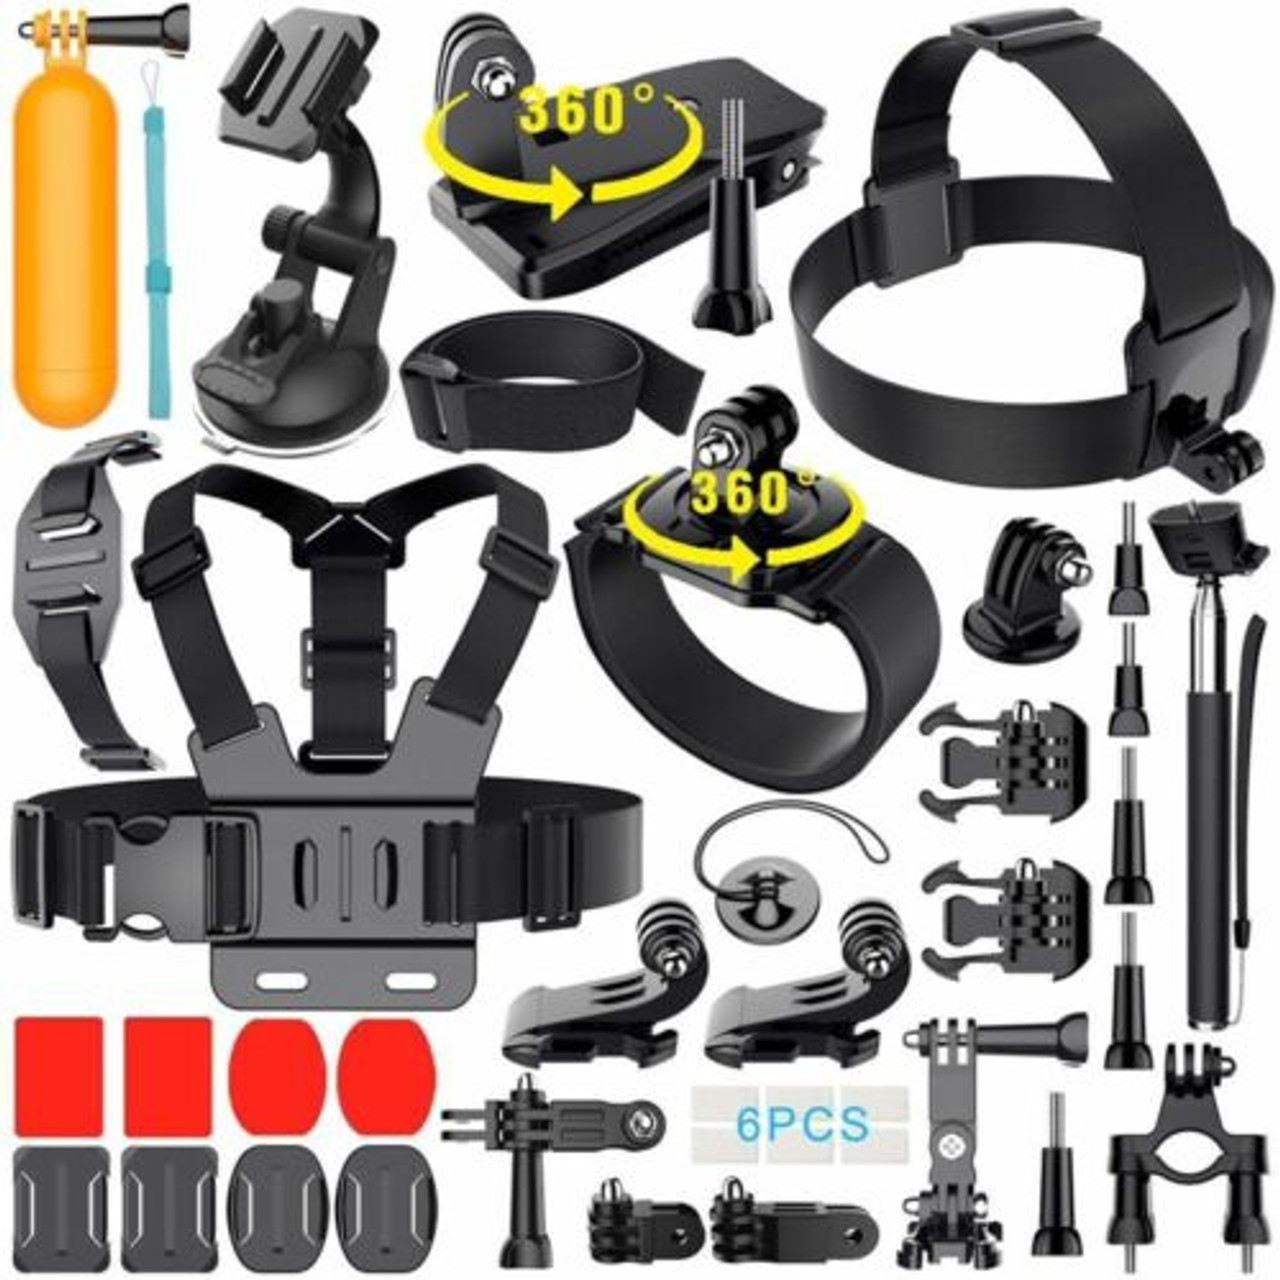 Monopod Floating Mount Accessories Kit For GoPro Hero 8 7 6 5 4 3 2Sports Camera